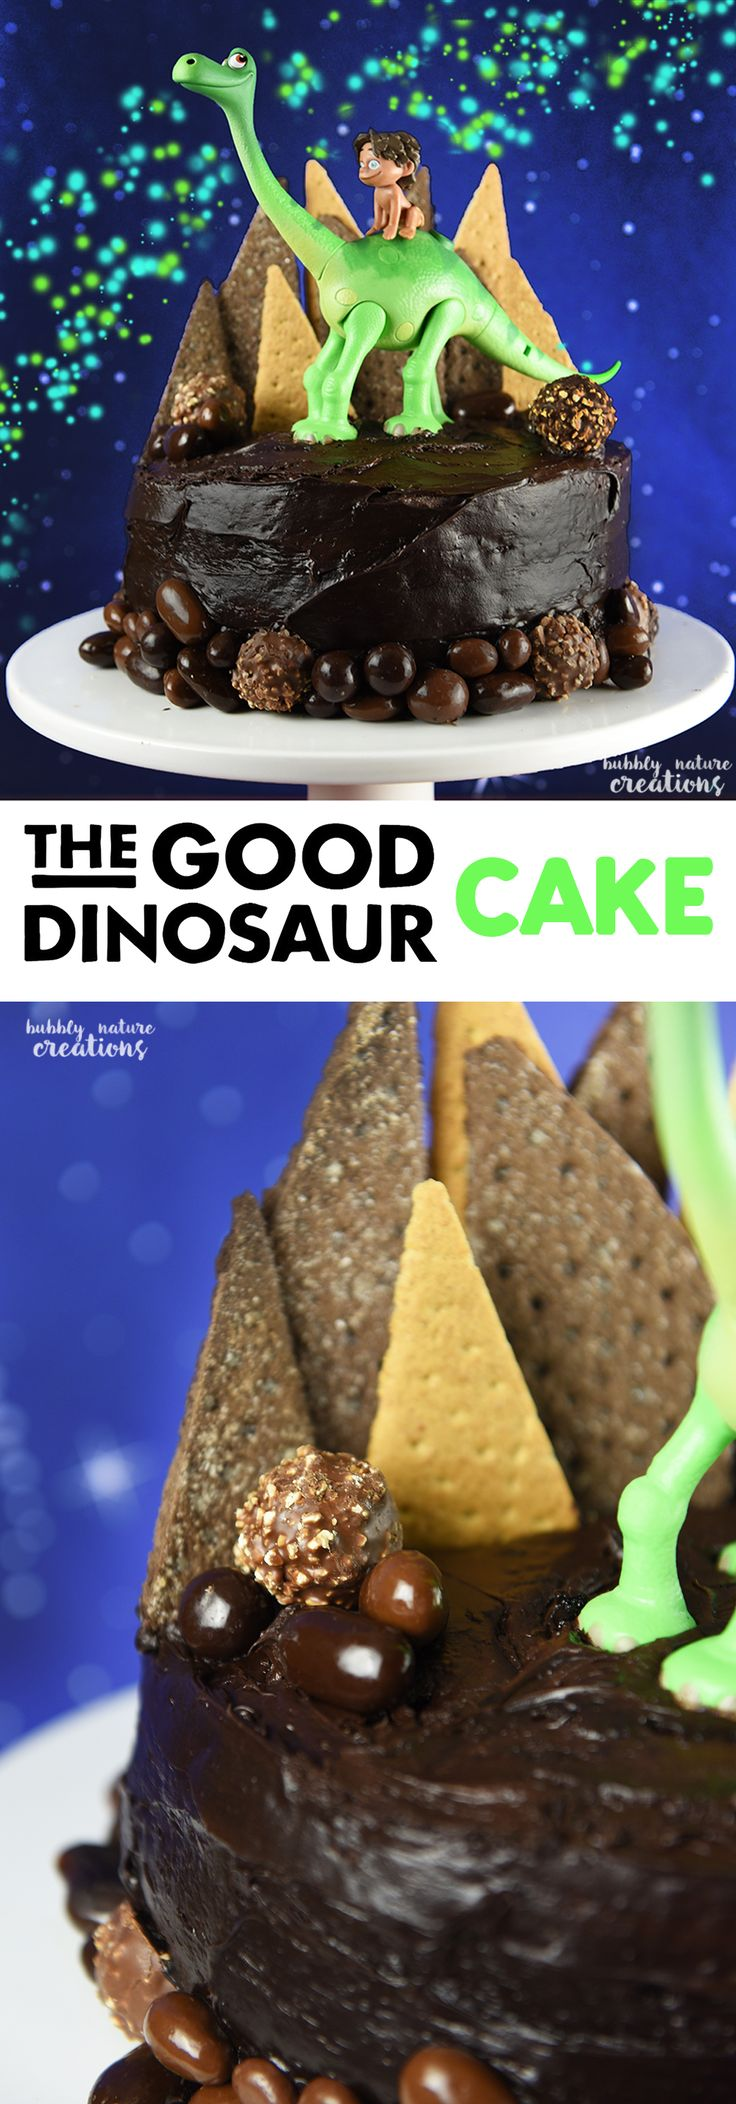 The Good Dinosaur Cake!!! So Cute for a Disney The Good Dinosaur party! It tastes just as delicious as it looks too!